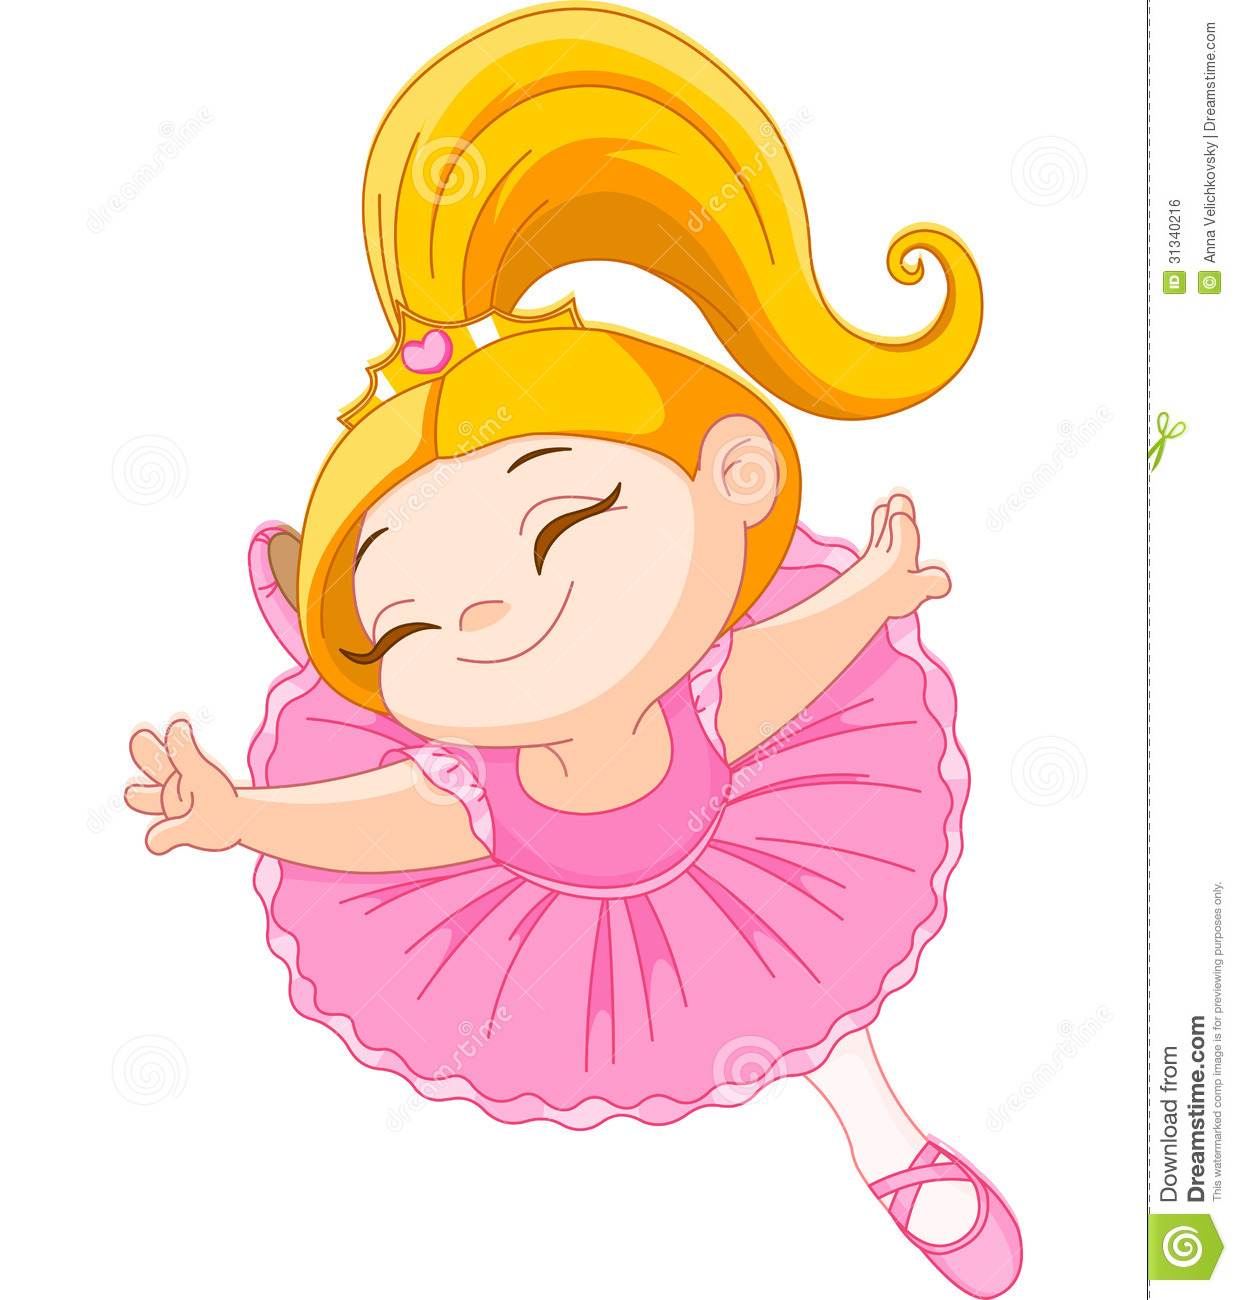 Ballet clipart cartoon Royalty ballerina Blond Free Ballerina